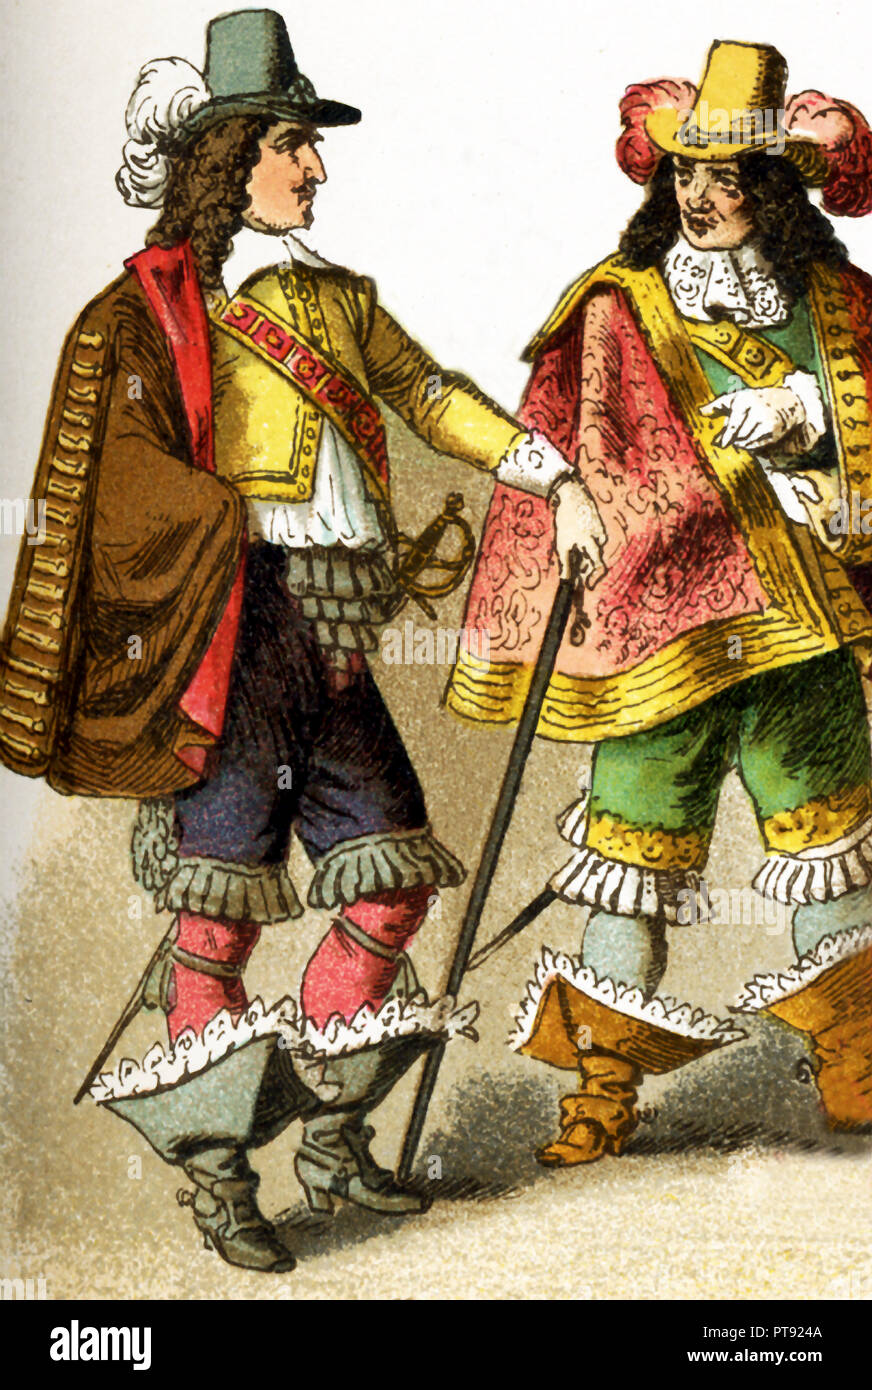 The Figures represented here are  French people living in the 17th century, specifically between 1600 and 1670. They are two lords of the court. The illustration dates to 1882. - Stock Image